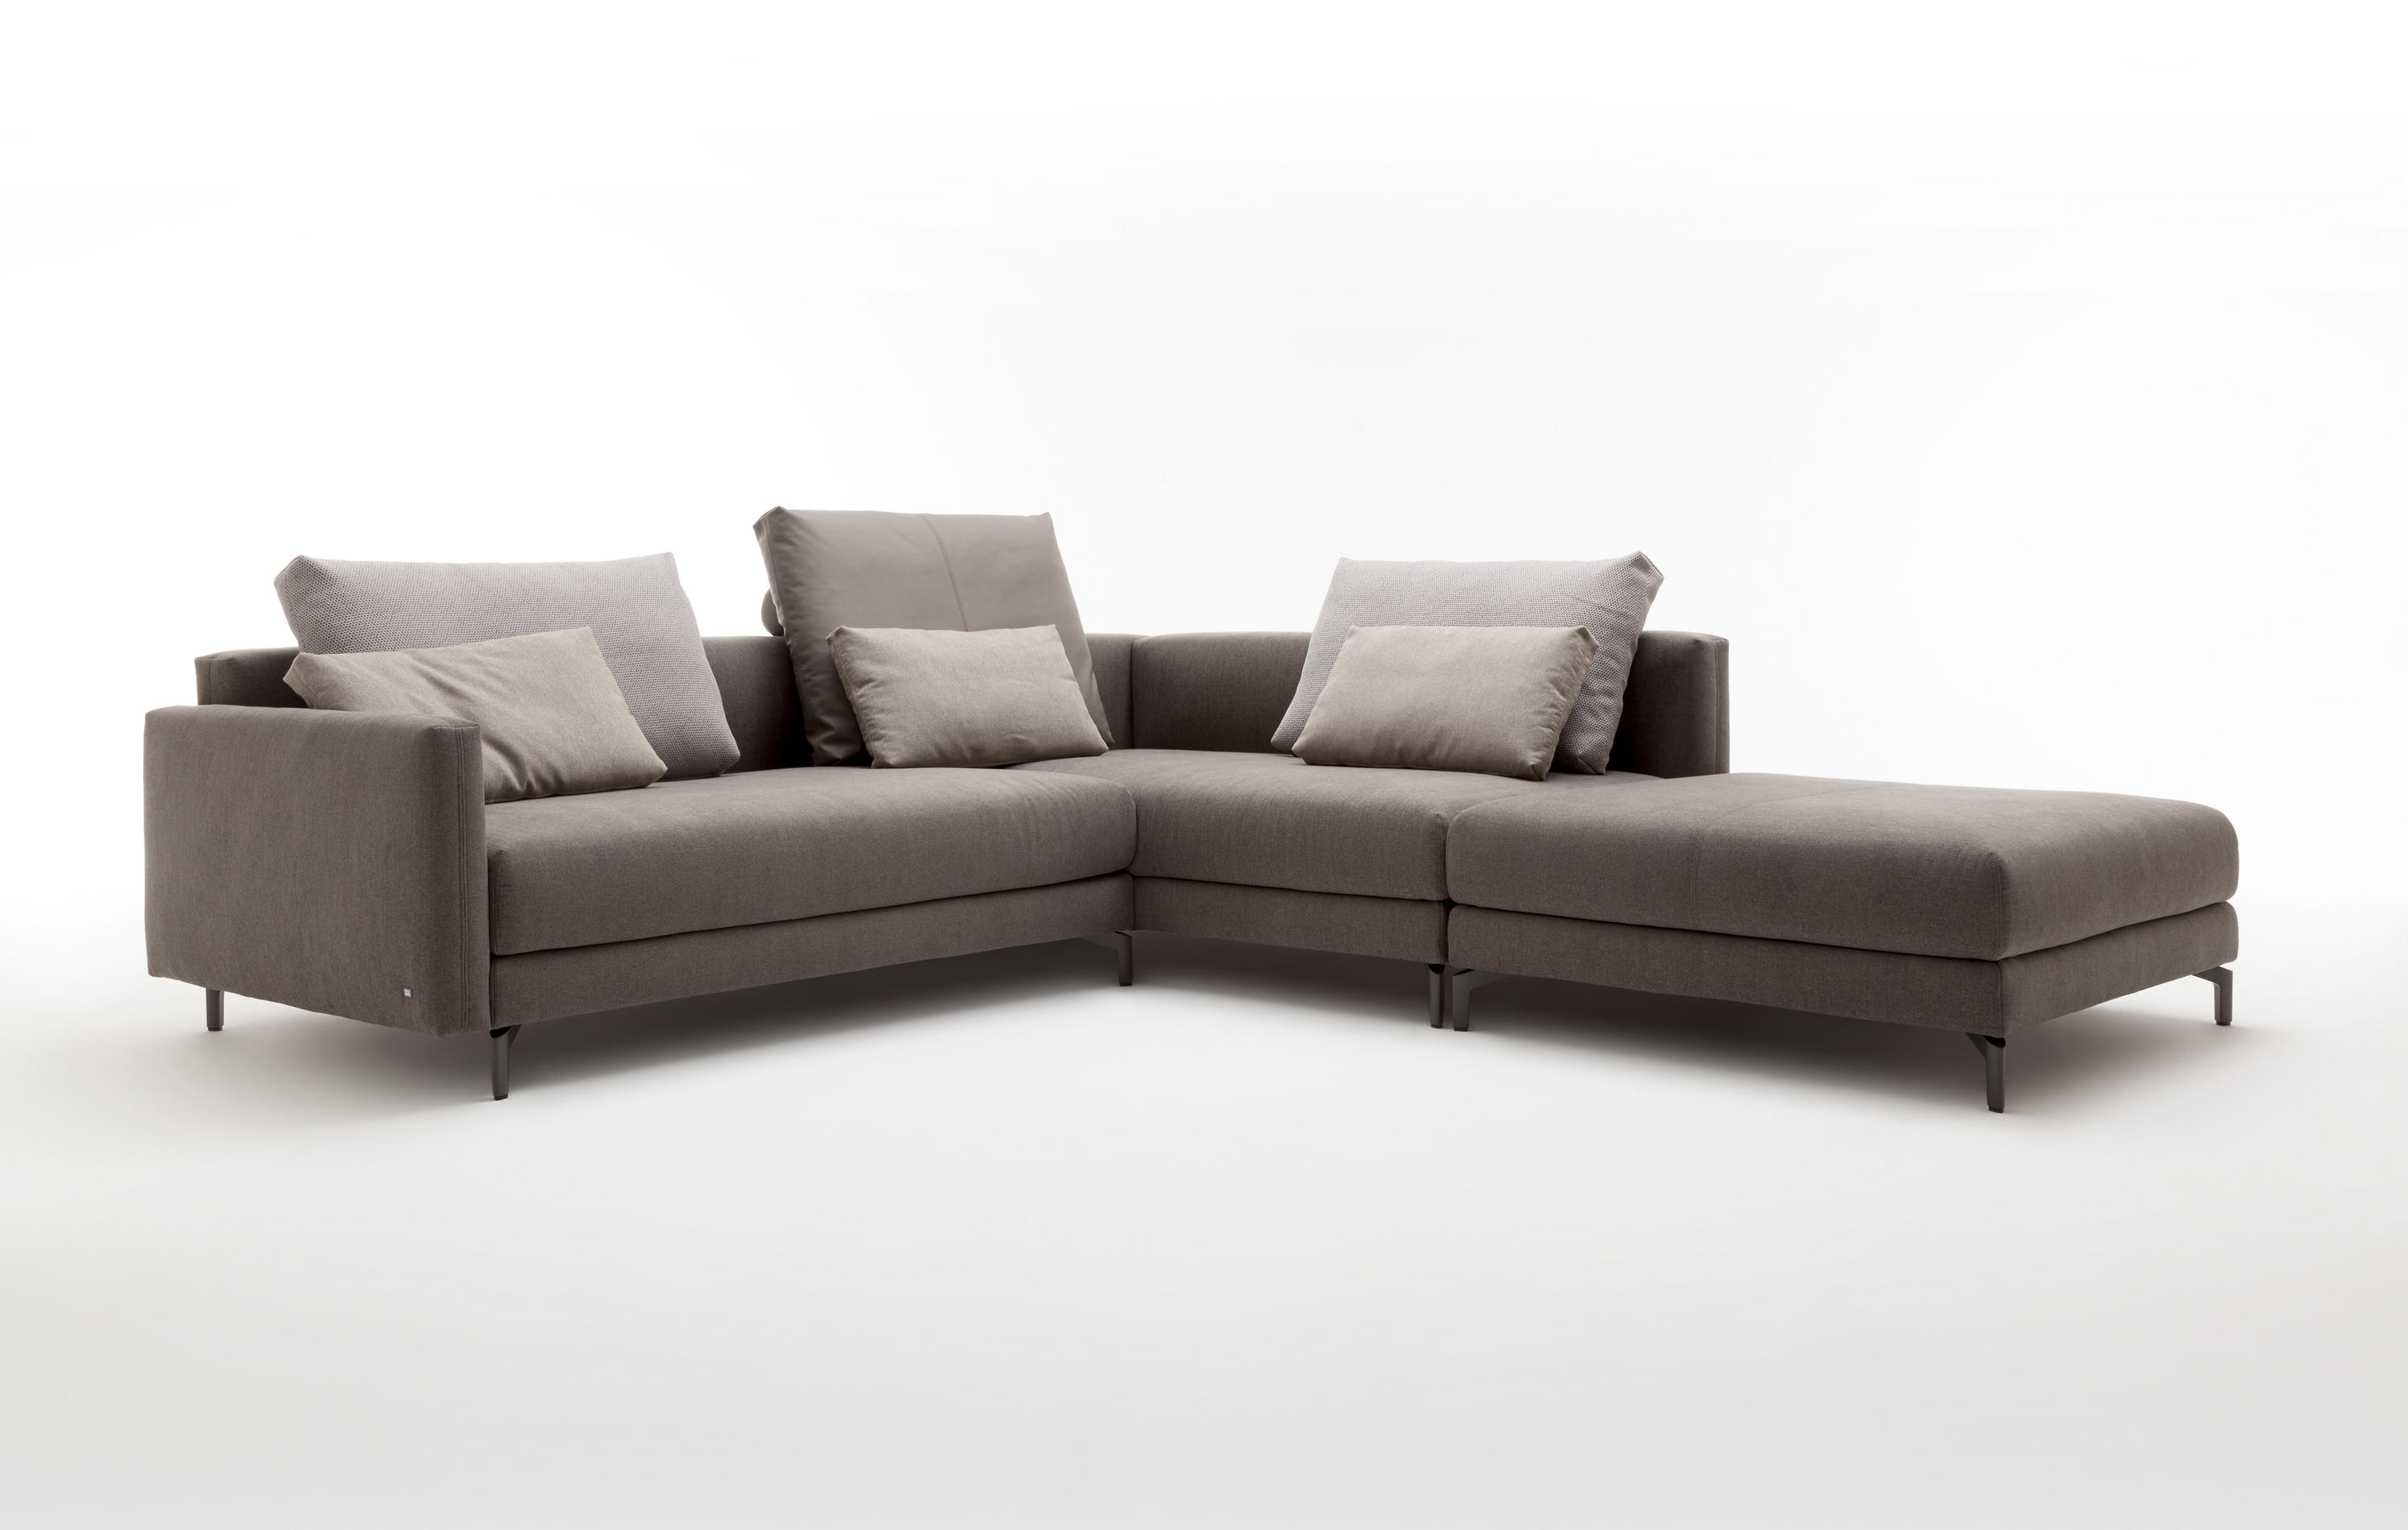 Rolf Benz Couch Rolf Benz Nuvola Sofas From Rolf Benz Architonic